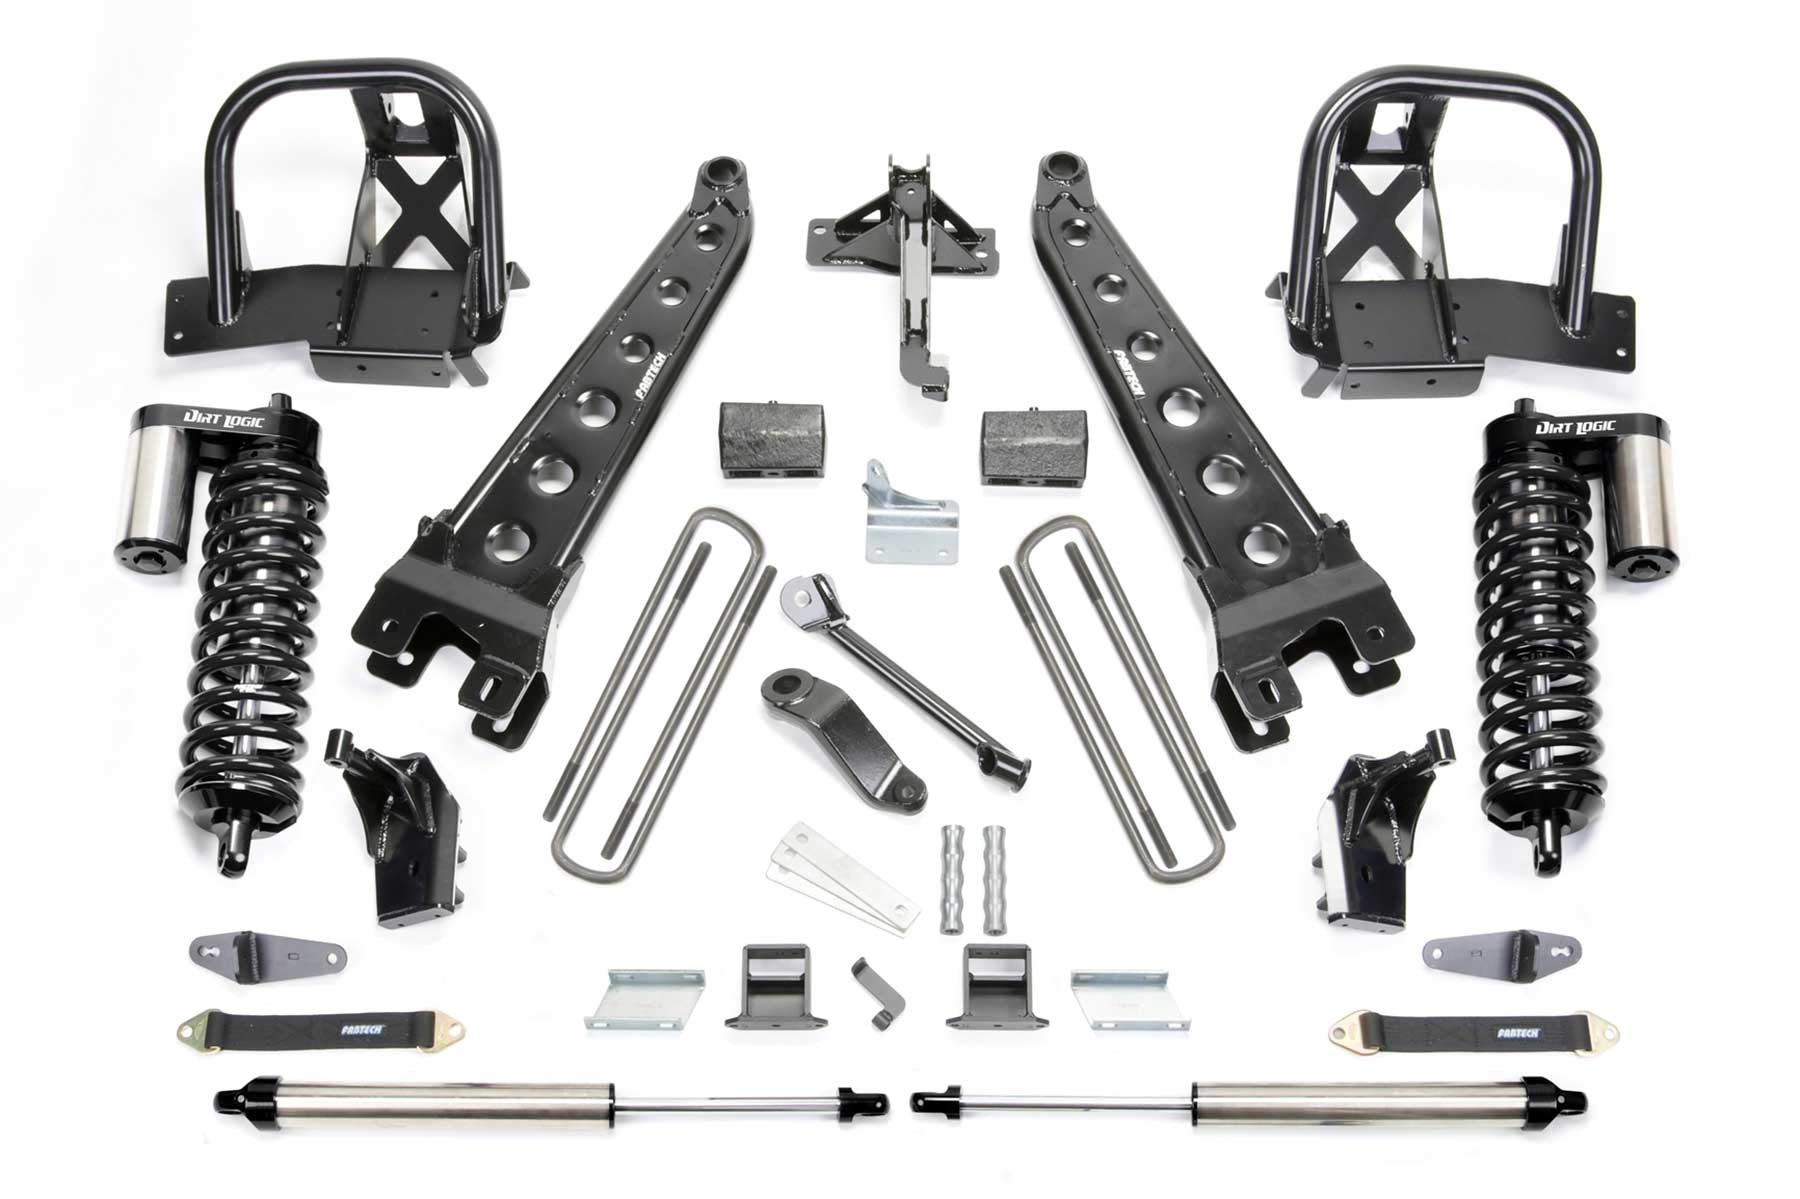 FABTECH 2011-16 Ford F250 4WD-6″ RADIUS ARM SYSTEM W/DIRT LOGIC 4.0 COILOVERS & REAR DIRT LOGIC SHOCKS